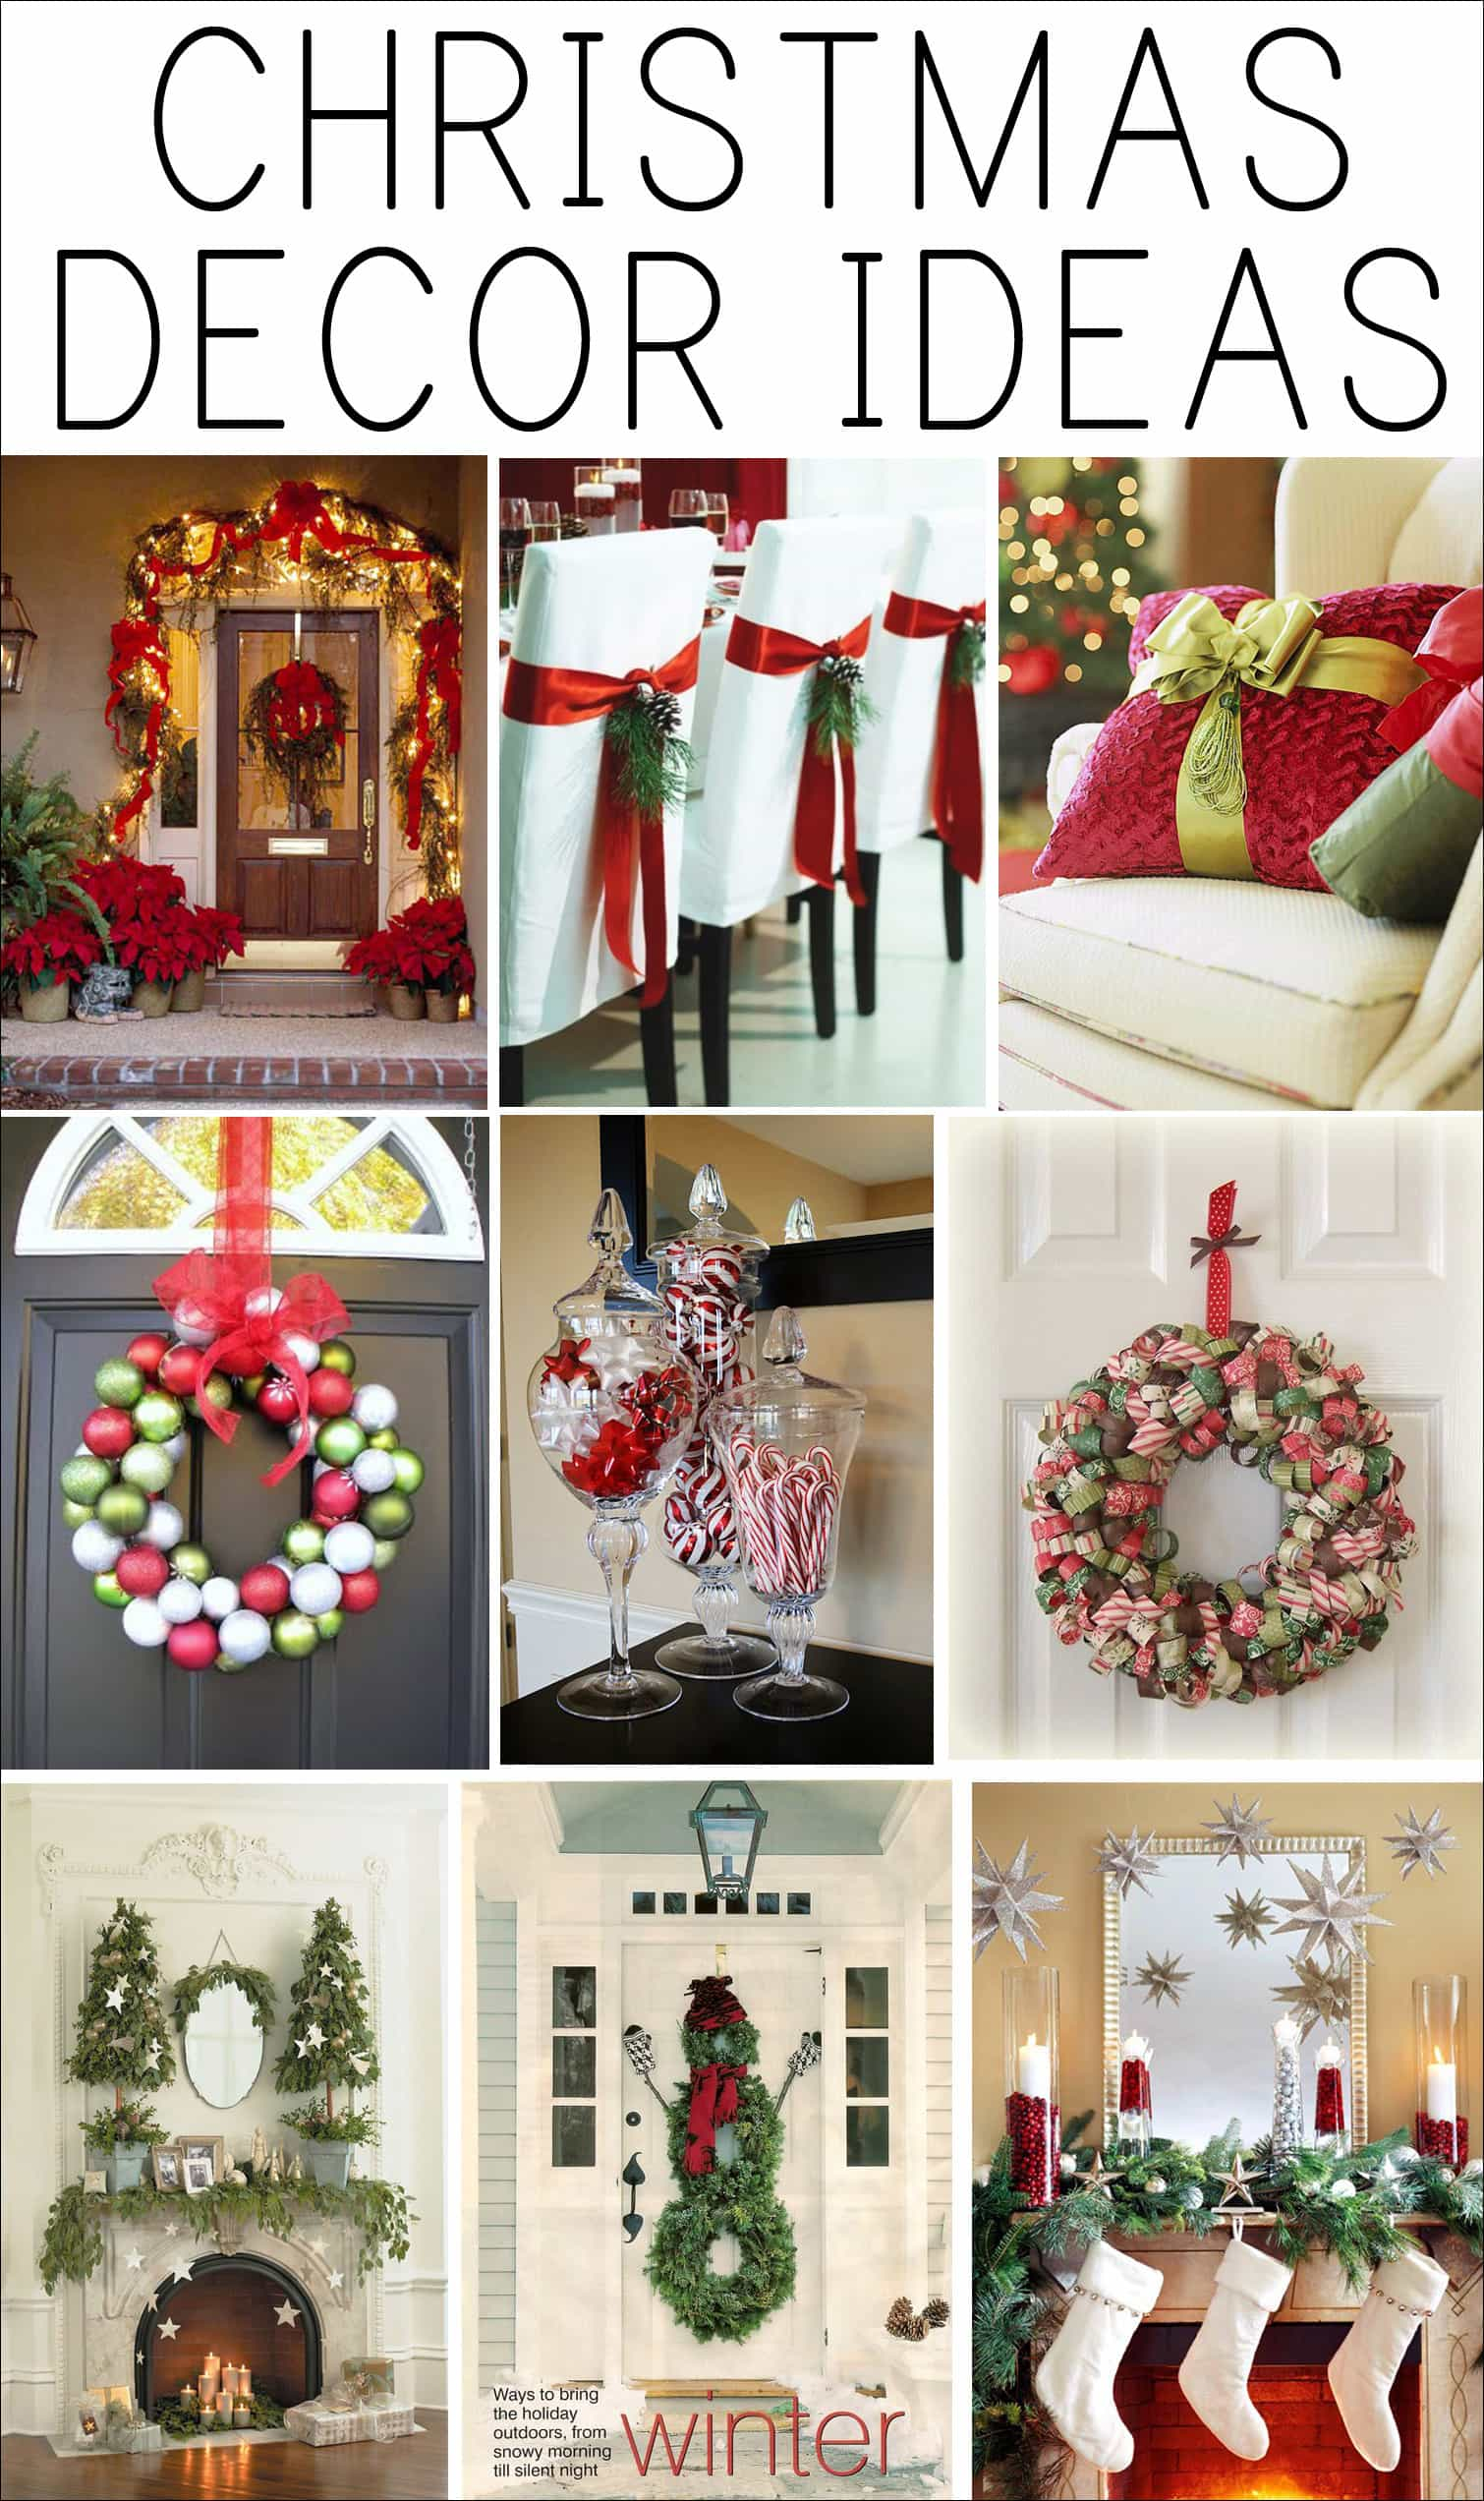 Christmas decorations ideas - photo#25